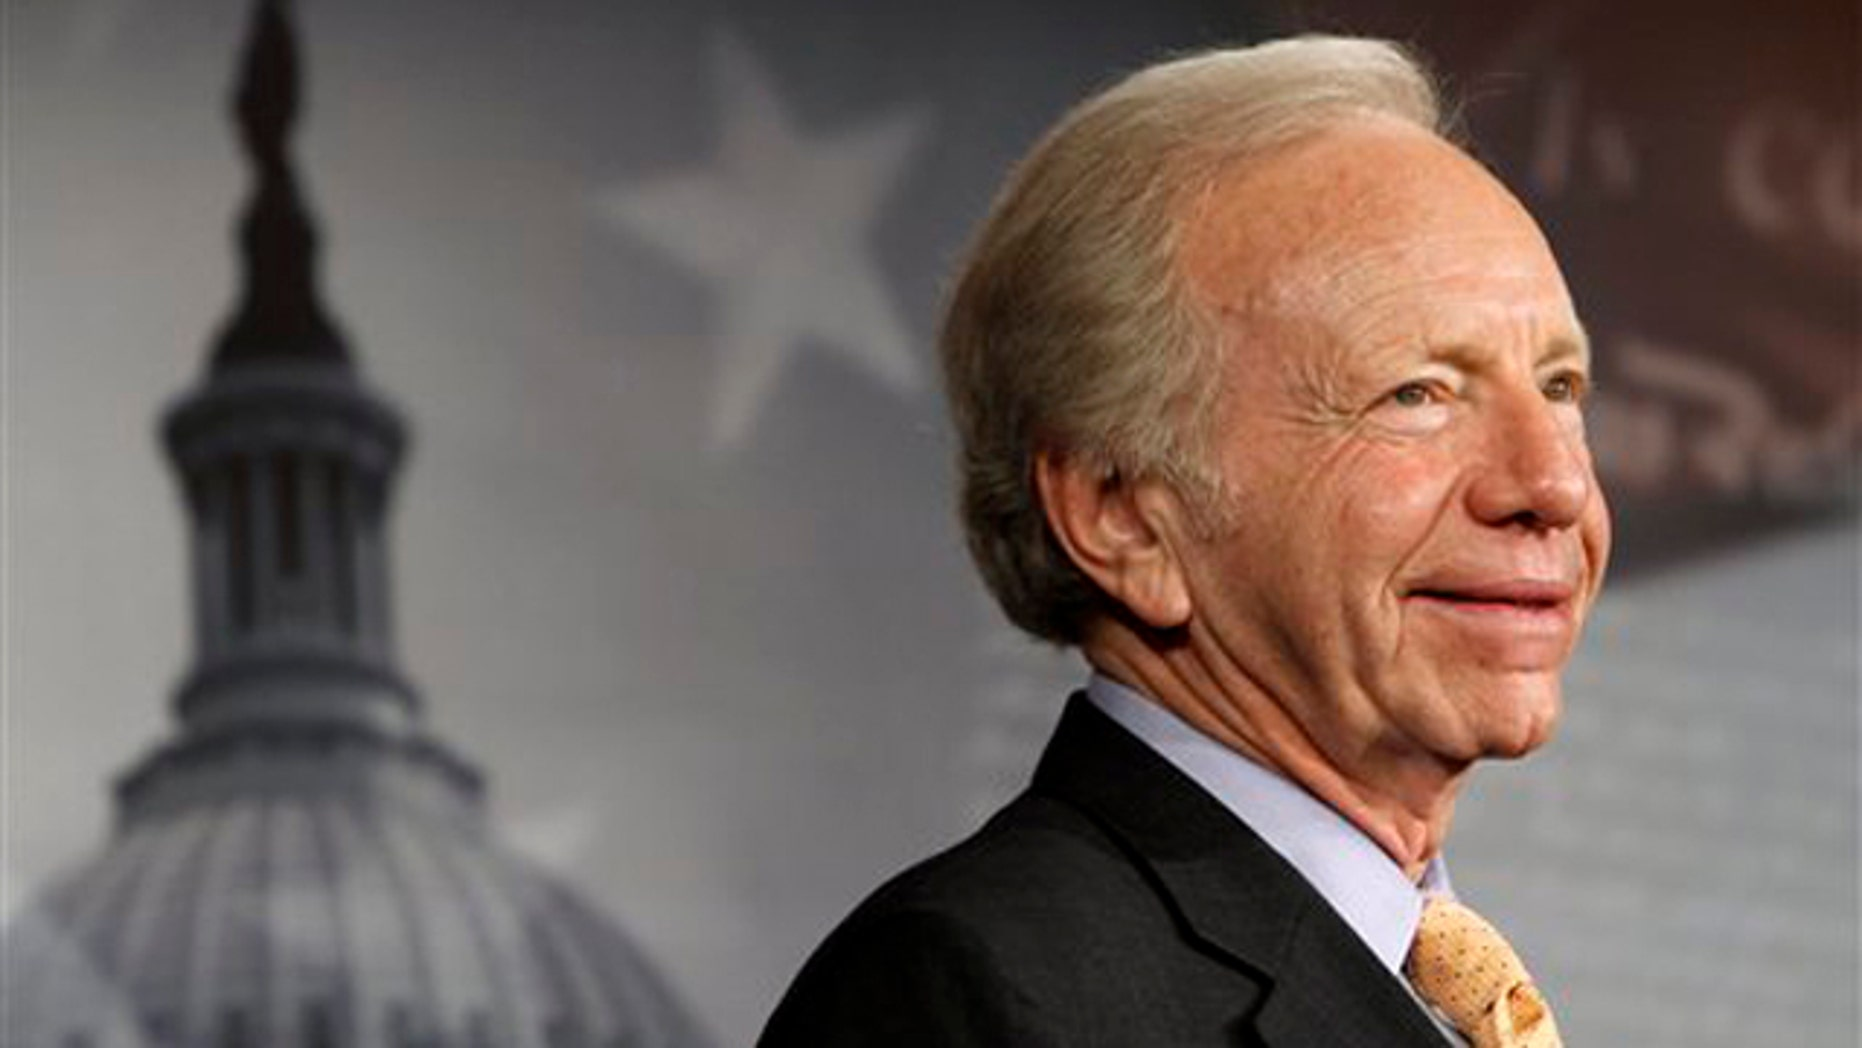 FILE: Jan. 31, 2012: Sen. Joe Lieberman smiles during a news conference on Capitol Hill.